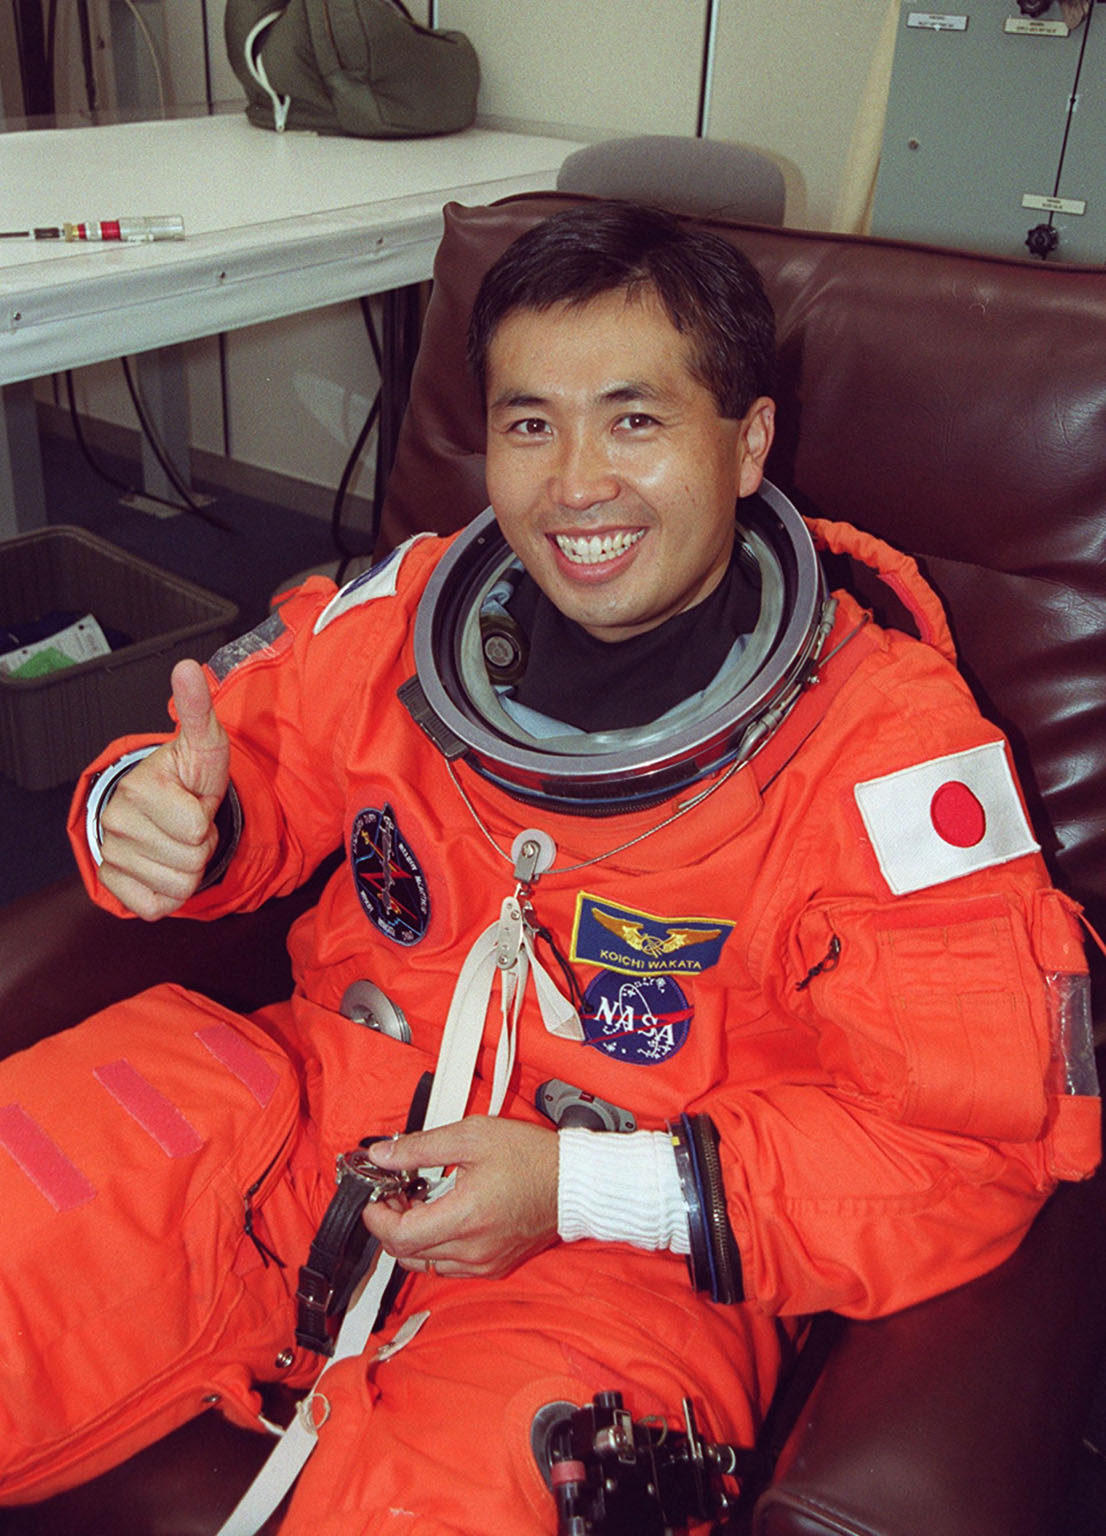 During suitup in the Operations and Checkout Building, STS-92 Mission Specialist Koichi Wakata of Japan signals thumbs up for a second launch attempt. During the 11-day mission to the International Space Station, four extravehicular activities (EVAs), or spacewalks, are planned for construction. The payload includes the Integrated Truss Structure Z-1 and the third Pressurized Mating Adapter. The Z-1 truss is the first of 10 that will become the backbone of the Space Station, eventually stretching the length of a football field. PMA-3 will provide a Shuttle docking port for solar array installation on the sixth Station flight and Lab installation on the seventh Station flight.; Launch is scheduled for 7:17 p.m. EDT. Landing is expected Oct. 22 at 2:10 p.m. EDT